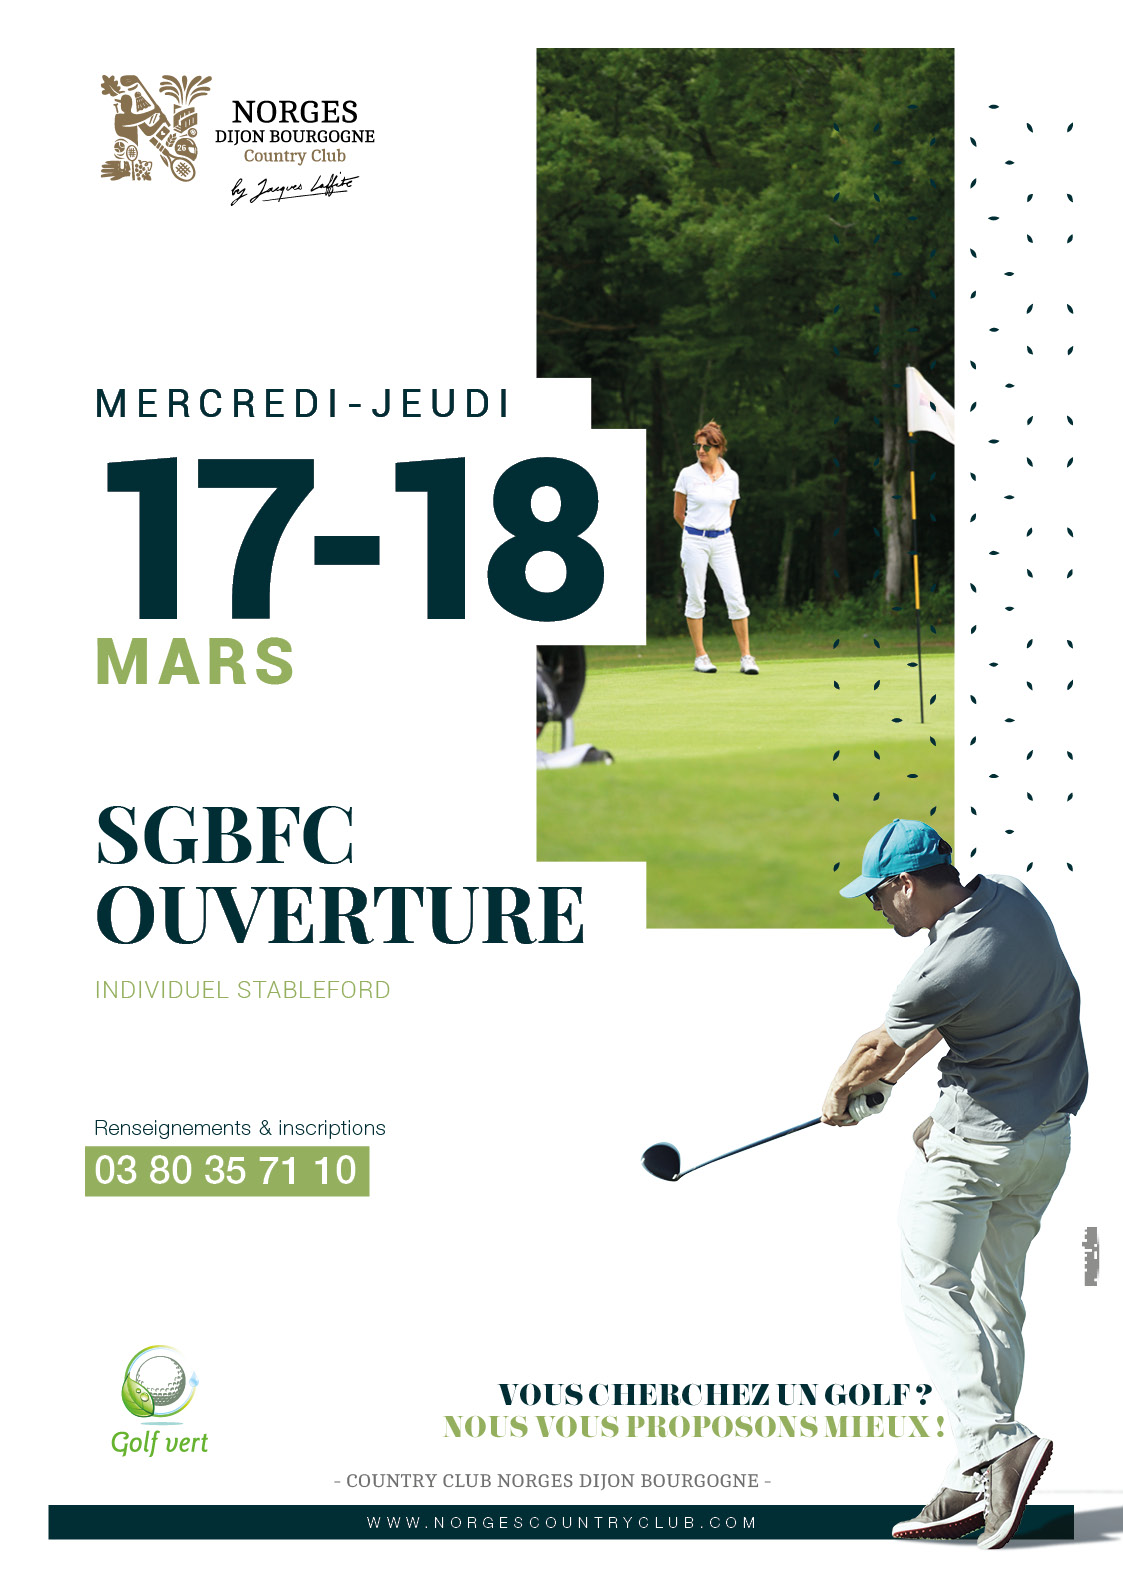 SGBFC Ouverture